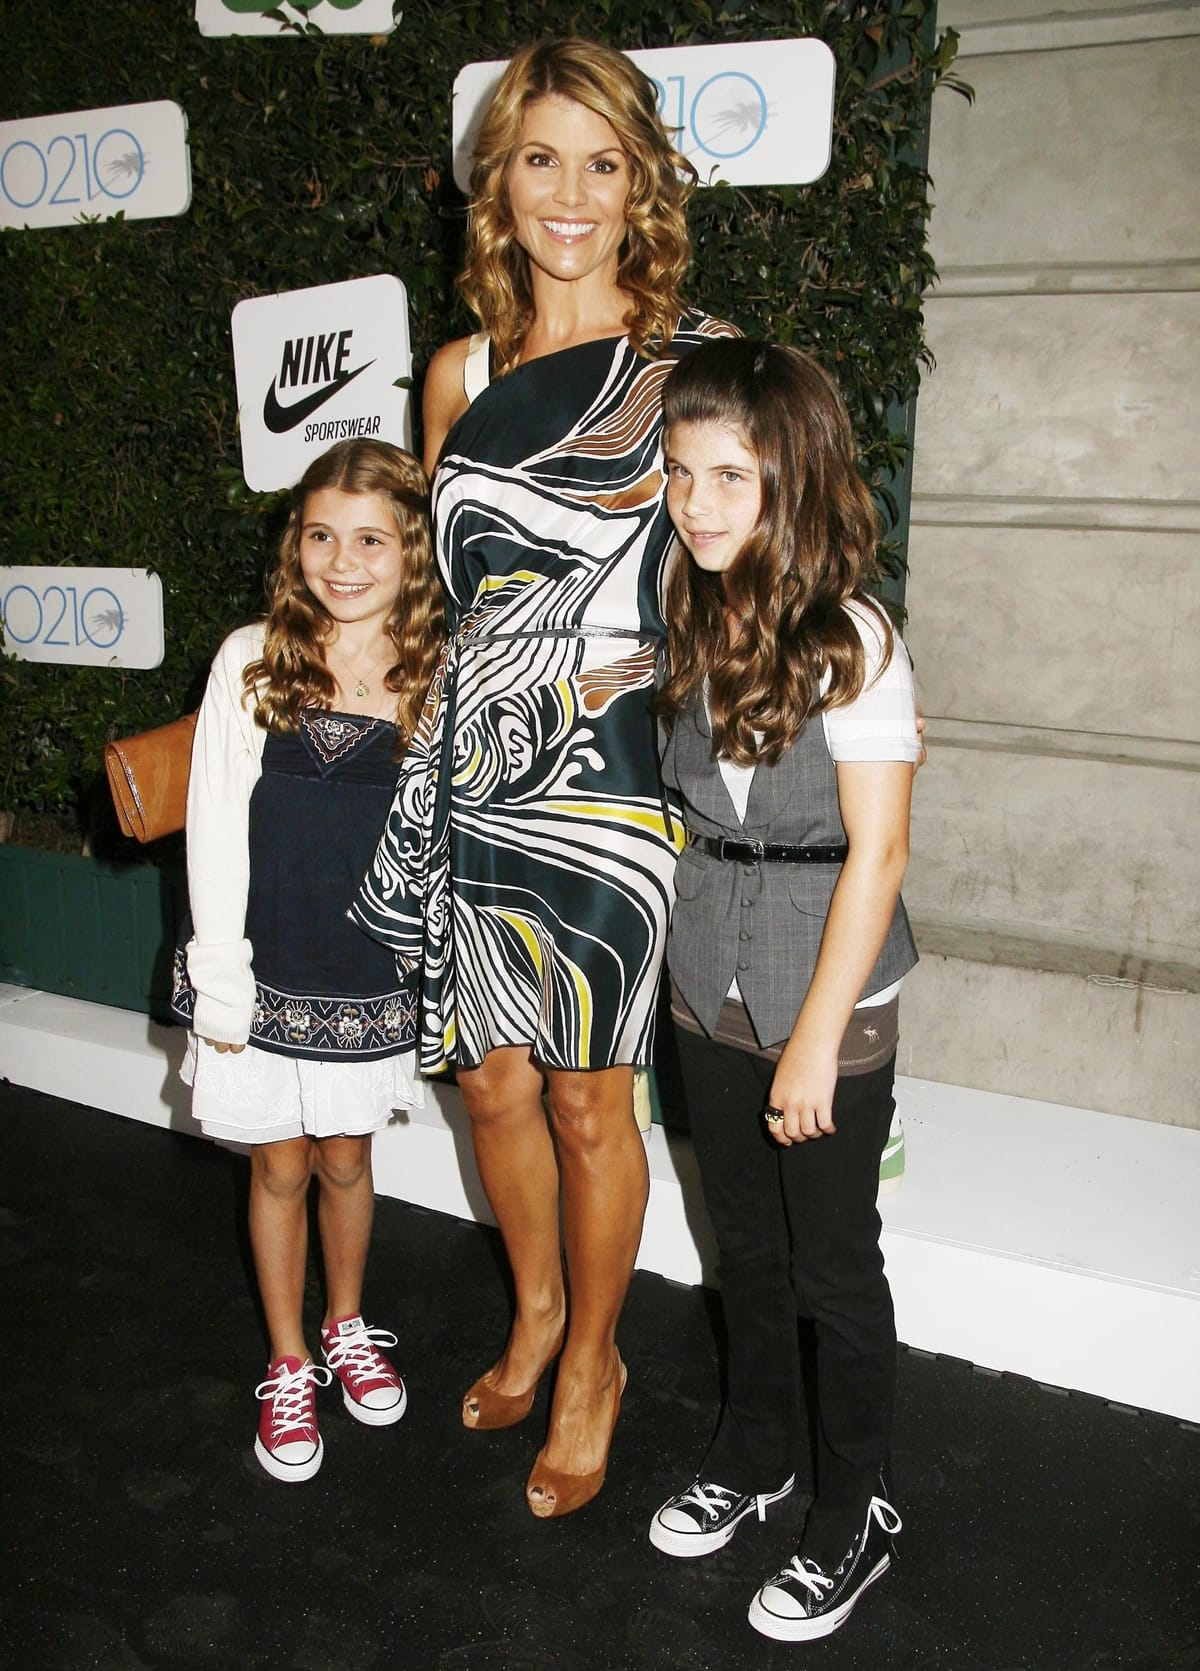 Actress Lori Loughlin and her daughters Olivia Jade Giannulli and Isabella Rose Giannulli